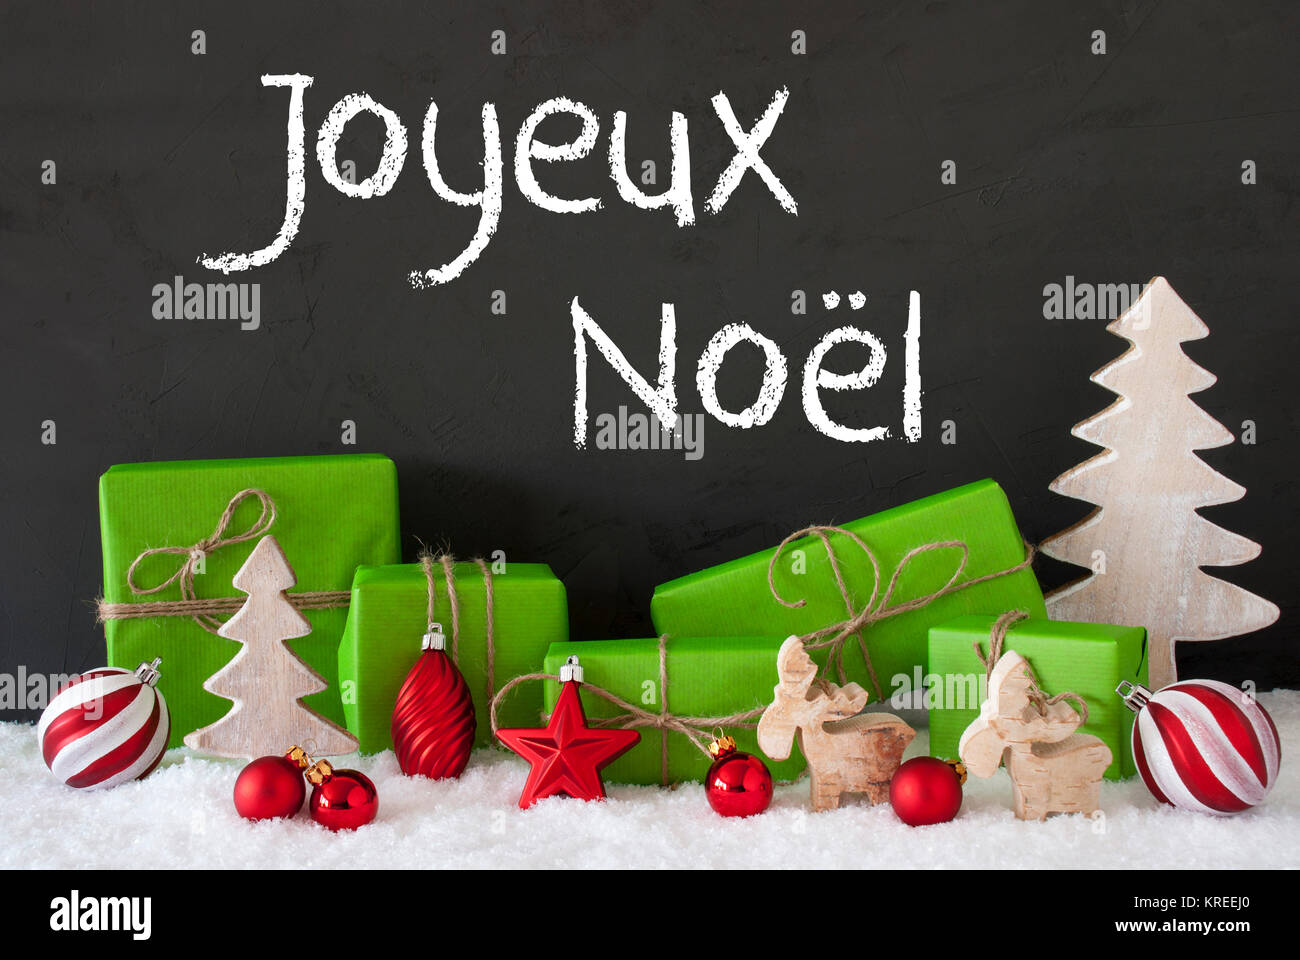 French Text Joyeux Noel Means Merry Christmas. Green Gifts Or Stock ...